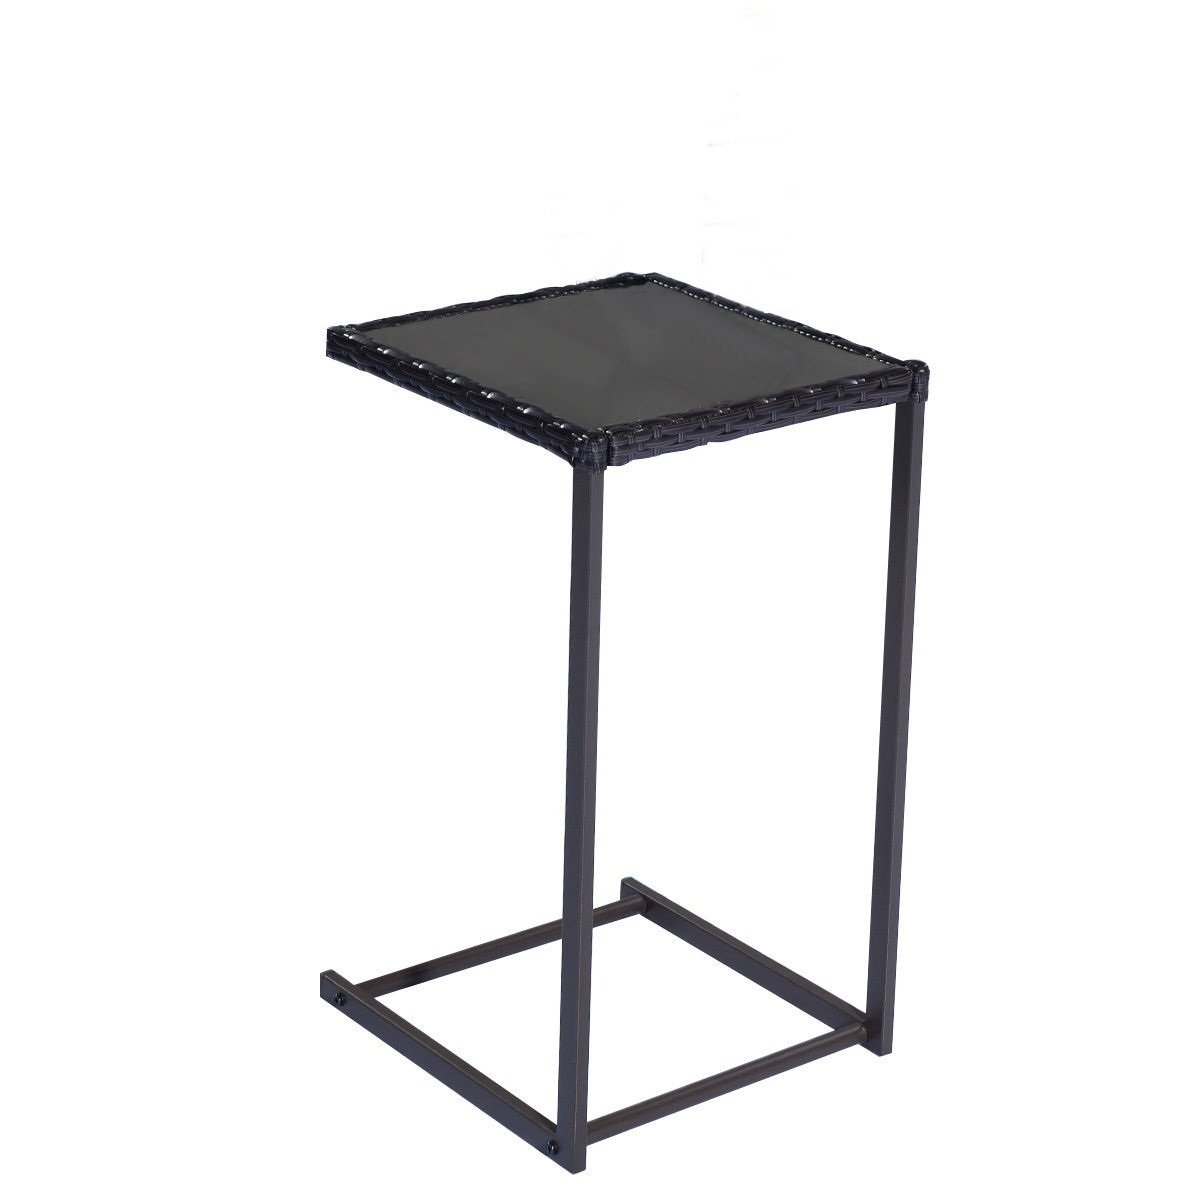 2Pcs Patio Rattan Side Table Stand for outdoor living space